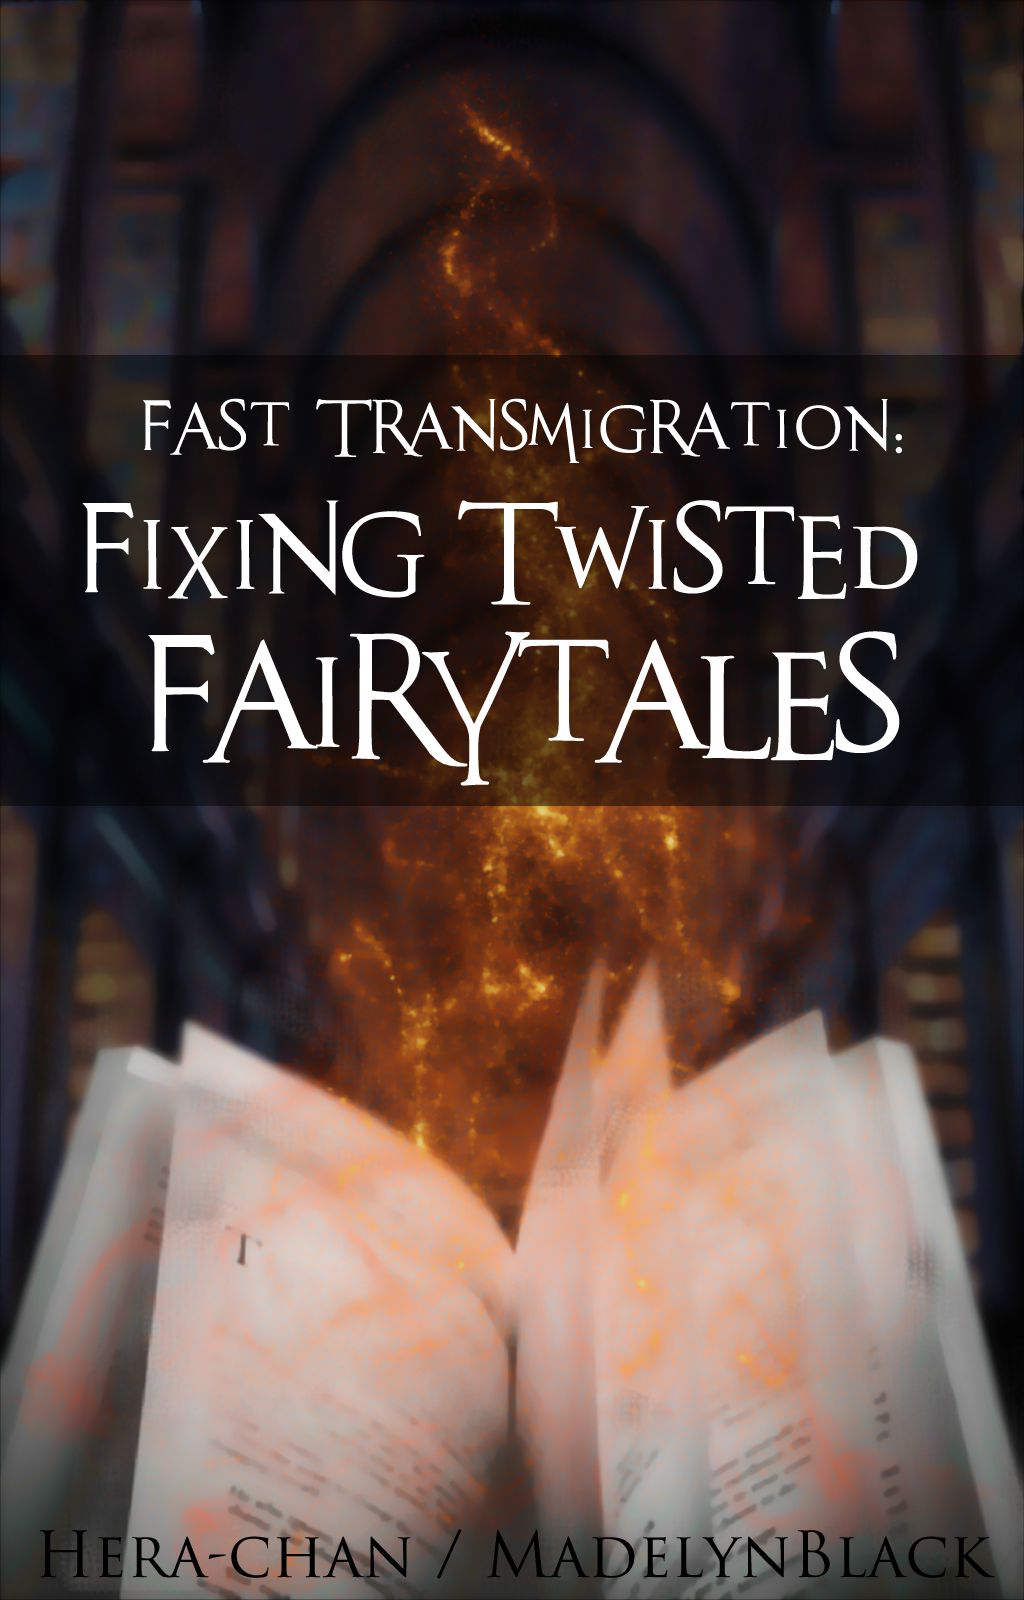 Fast Transmigration: Fixing Twisted Fairytales - Prologue